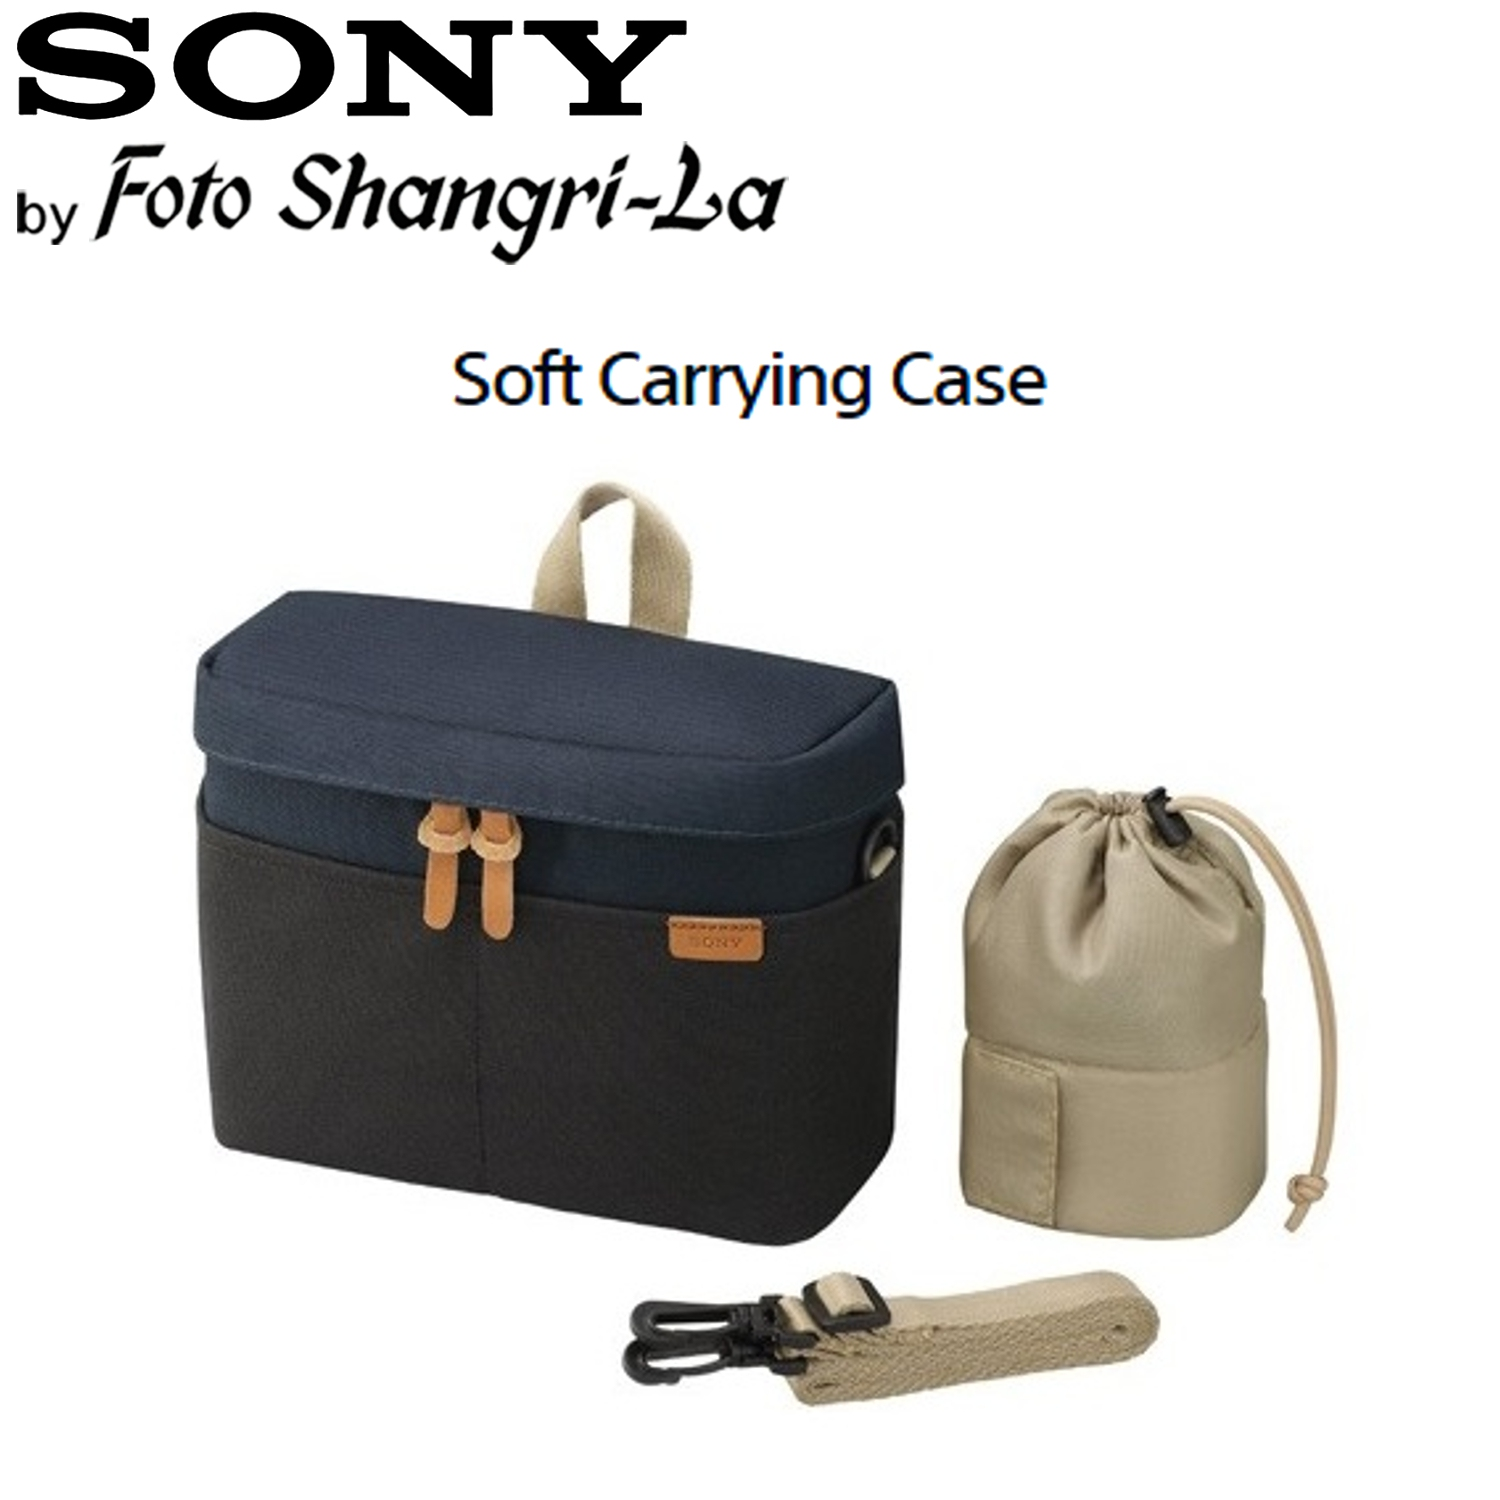 Sony Soft Carrying Case Bag for Mirrorless Digital Camera - LCS-BBK